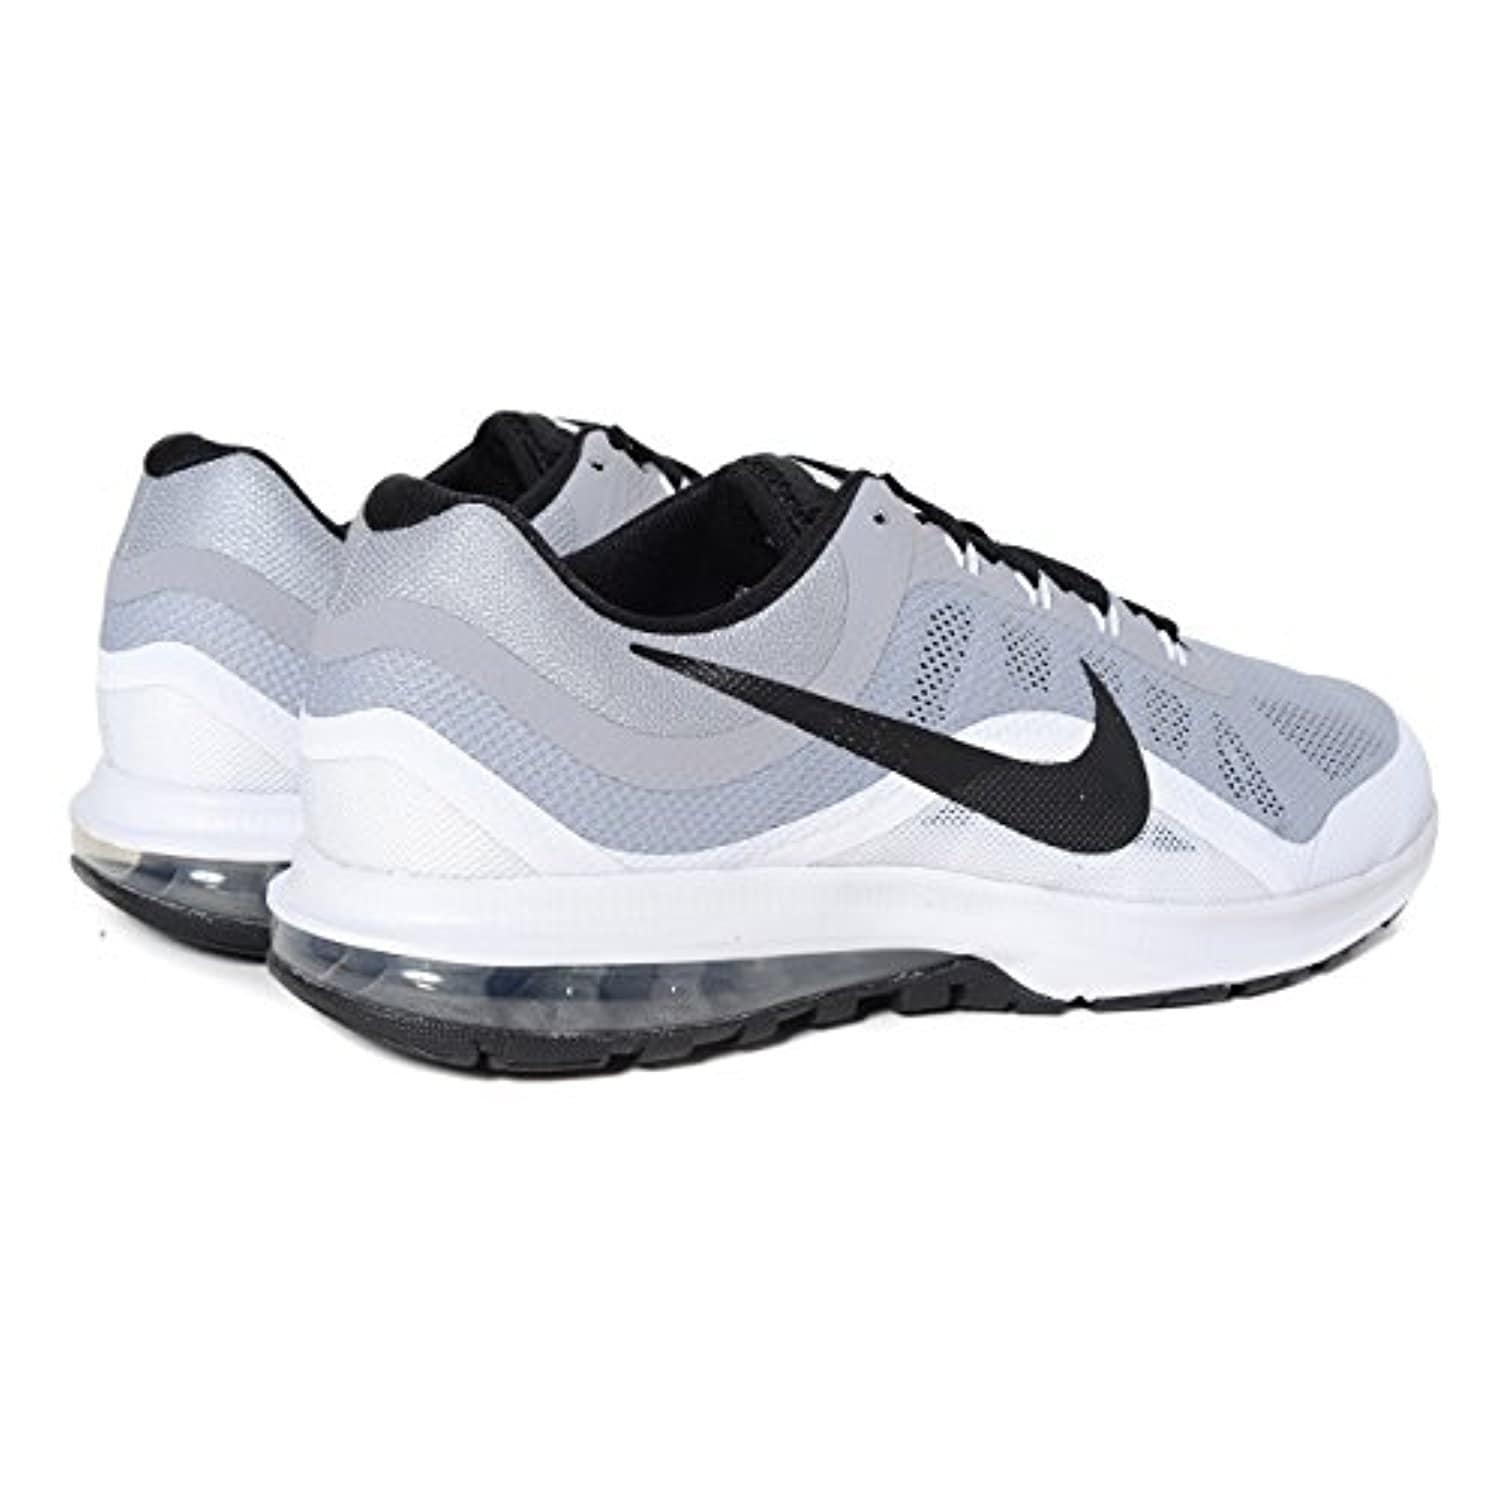 b432be401a Shop Nike Air Max Dynasty 2 Wolf Grey/White/White/Men's Black Running Shoes  - wolf grey/white/white/black - Free Shipping Today - Overstock - 18280214